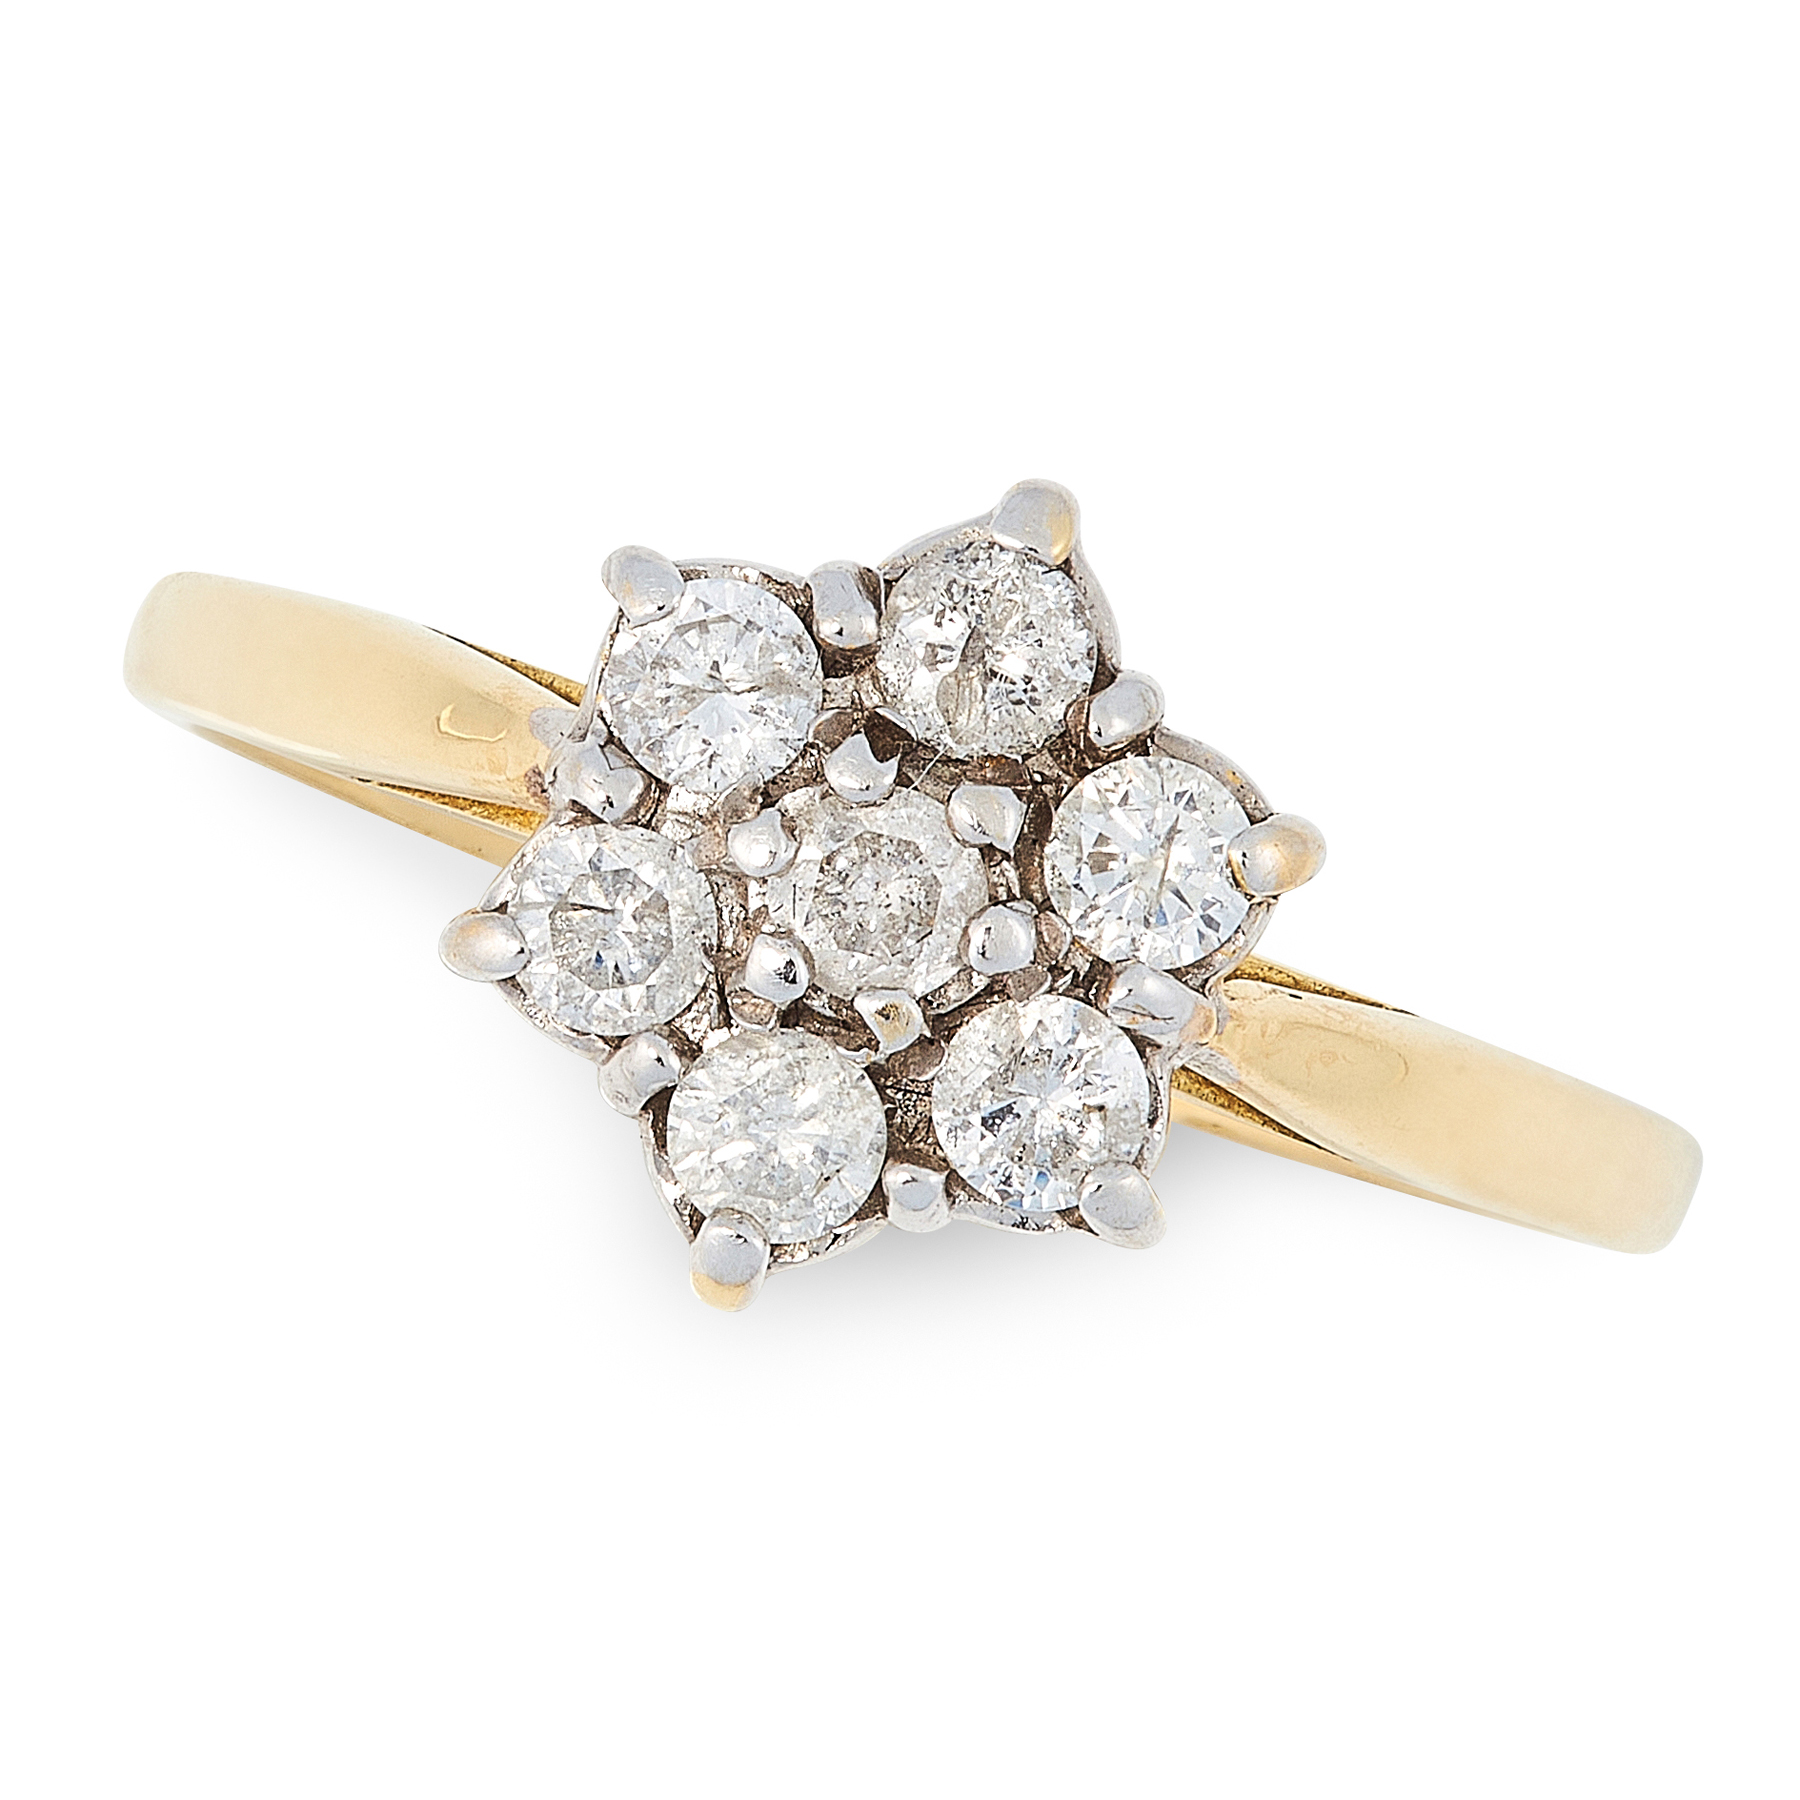 A DIAMOND CLUSTER RING in 18ct yellow gold and platinum, set with a cluster of seven round cut